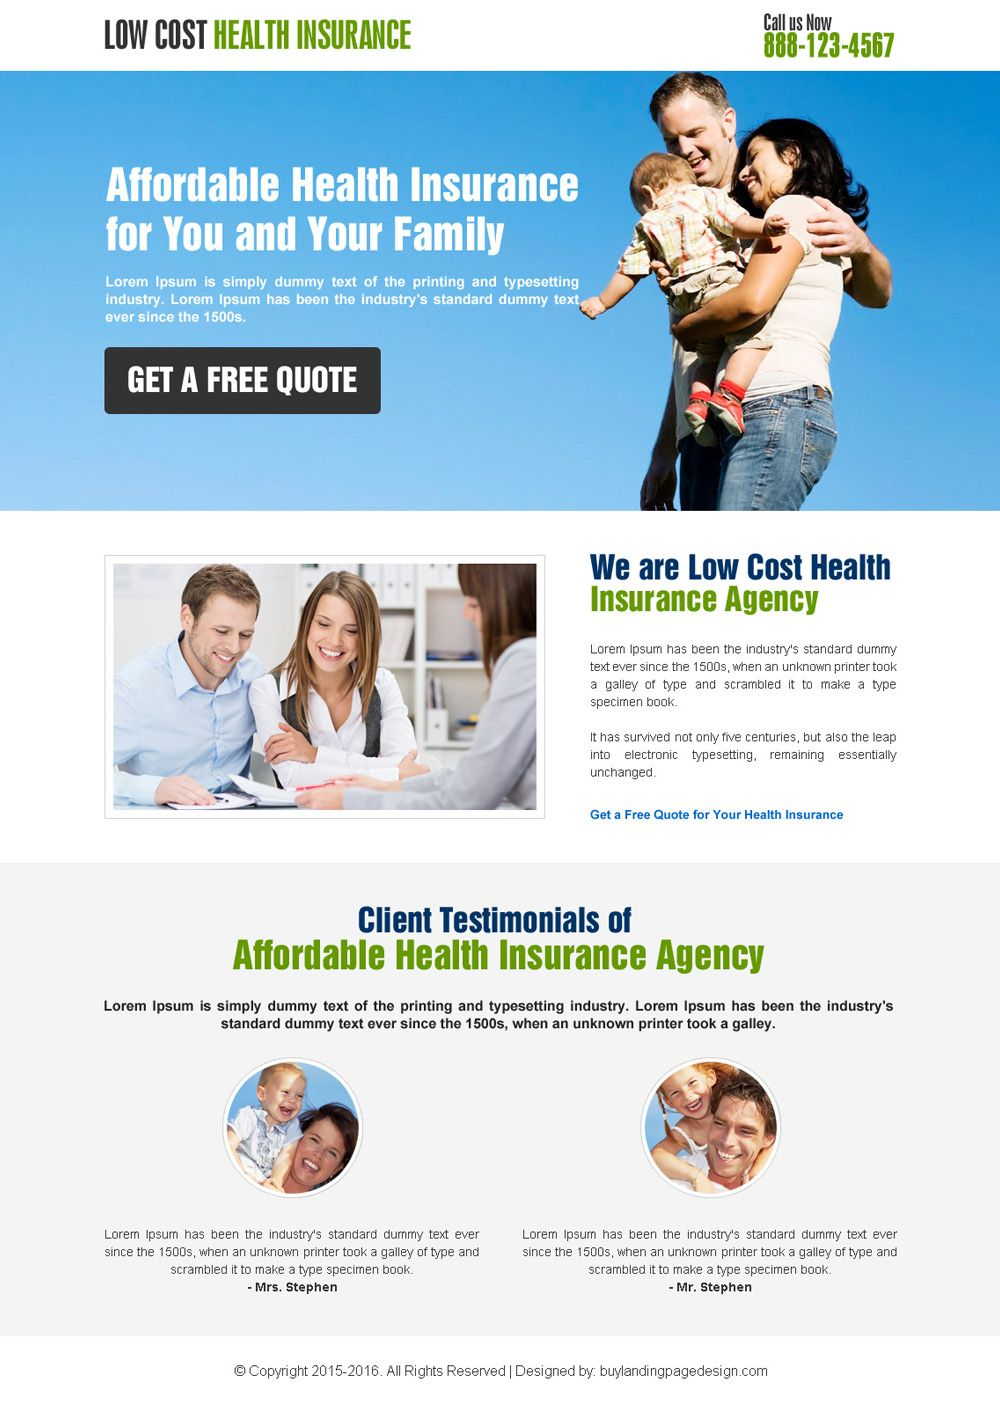 responsive low cost health insurance landing page design ...